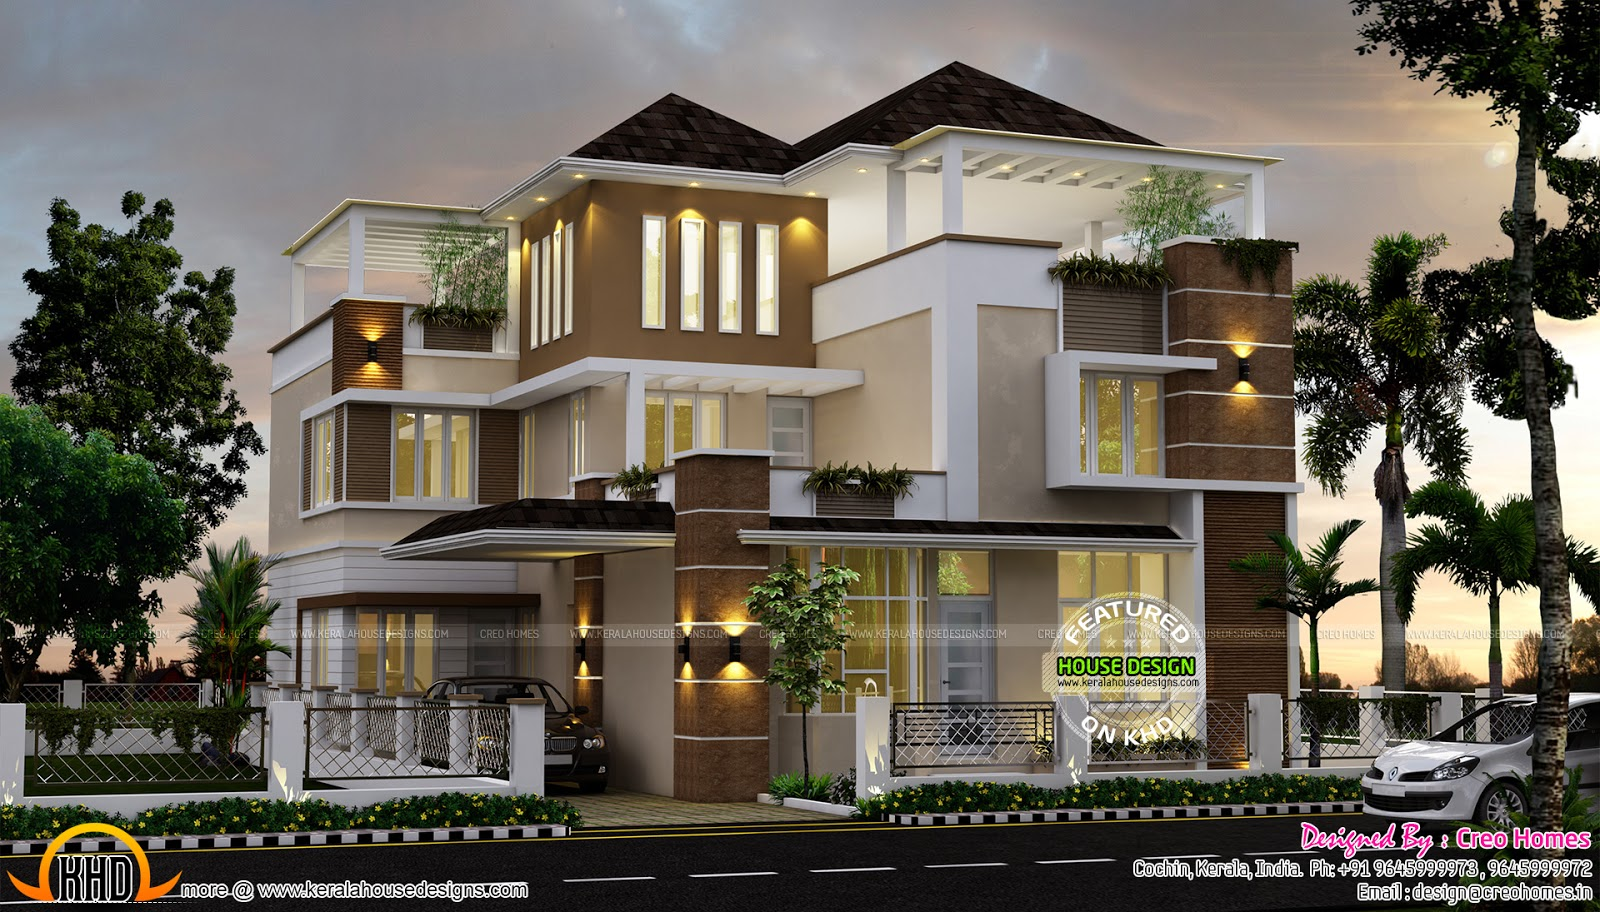 Modern Houses Floor Plan together with Creolesbydefinition likewise Grandes Temas Hogares De Ancianos Que Viven Viejo in addition 5584243708 together with Interior Solutions By Creo Homes Kerala Home Design And Floor Plans In Kerala Style Home Design Plans. on creo homes